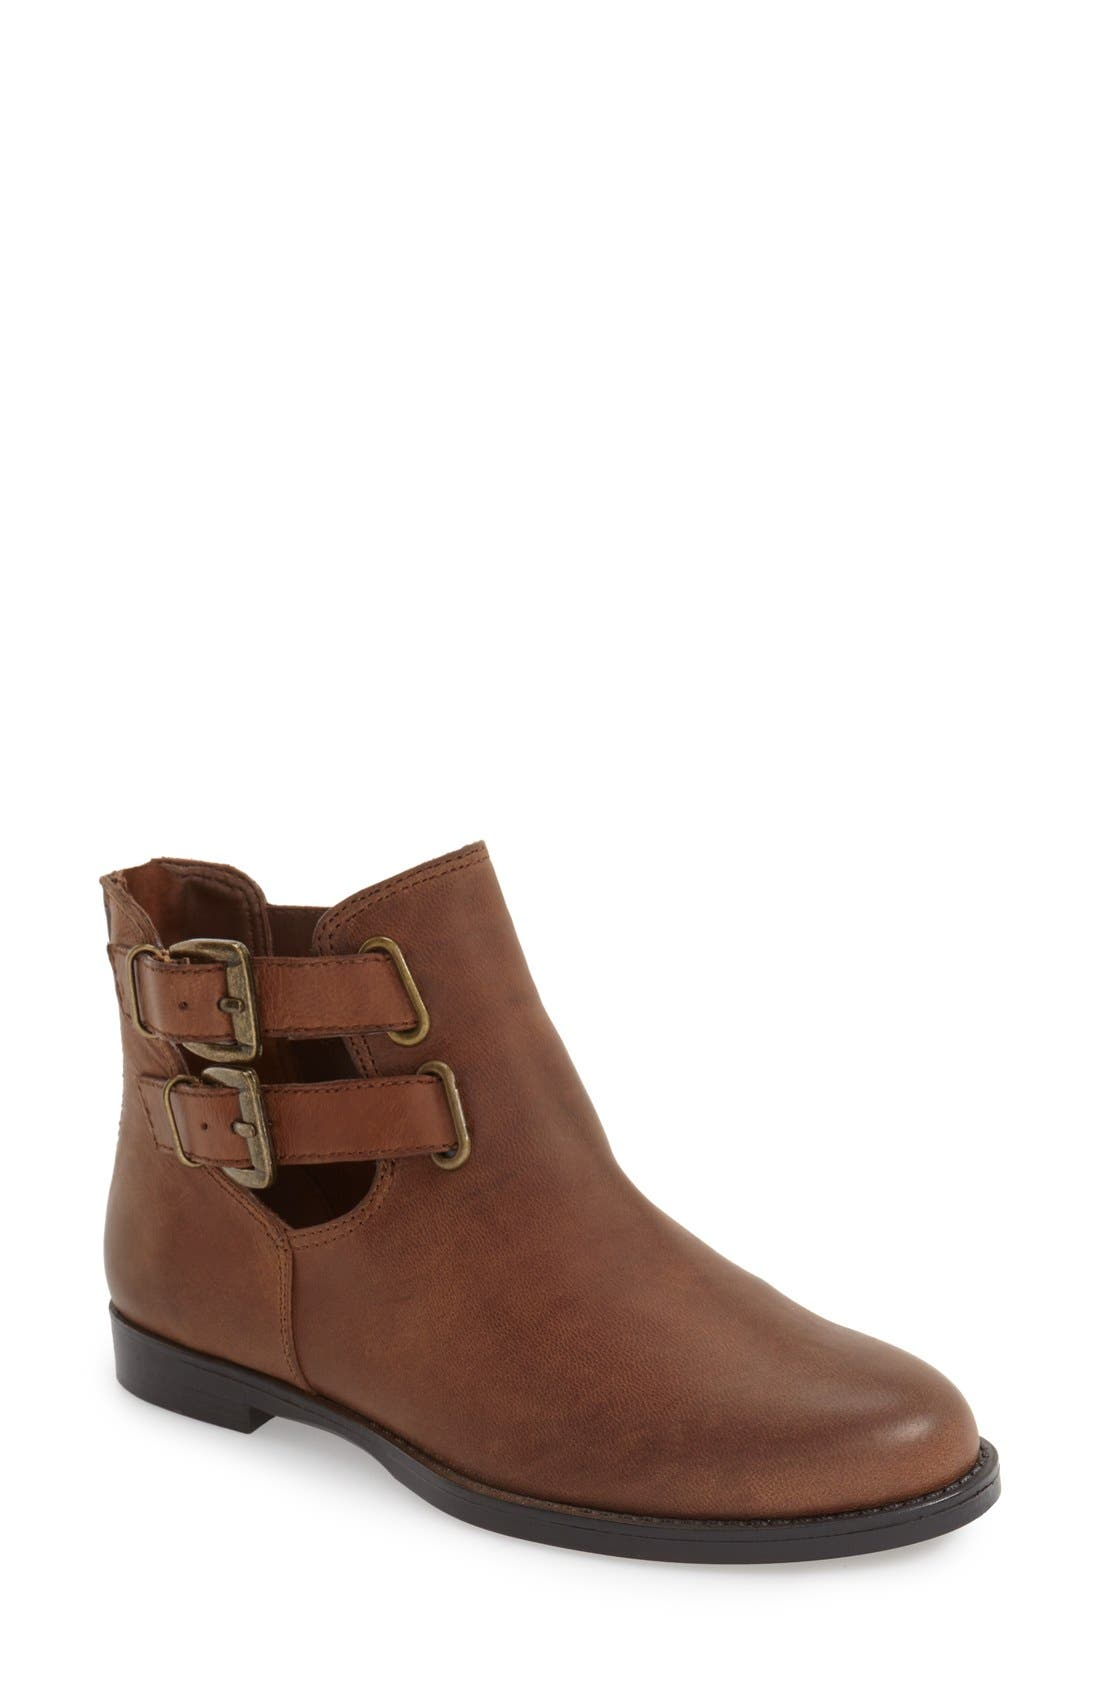 'Ramona' Double Buckle Bootie,                             Main thumbnail 1, color,                             Camel Leather